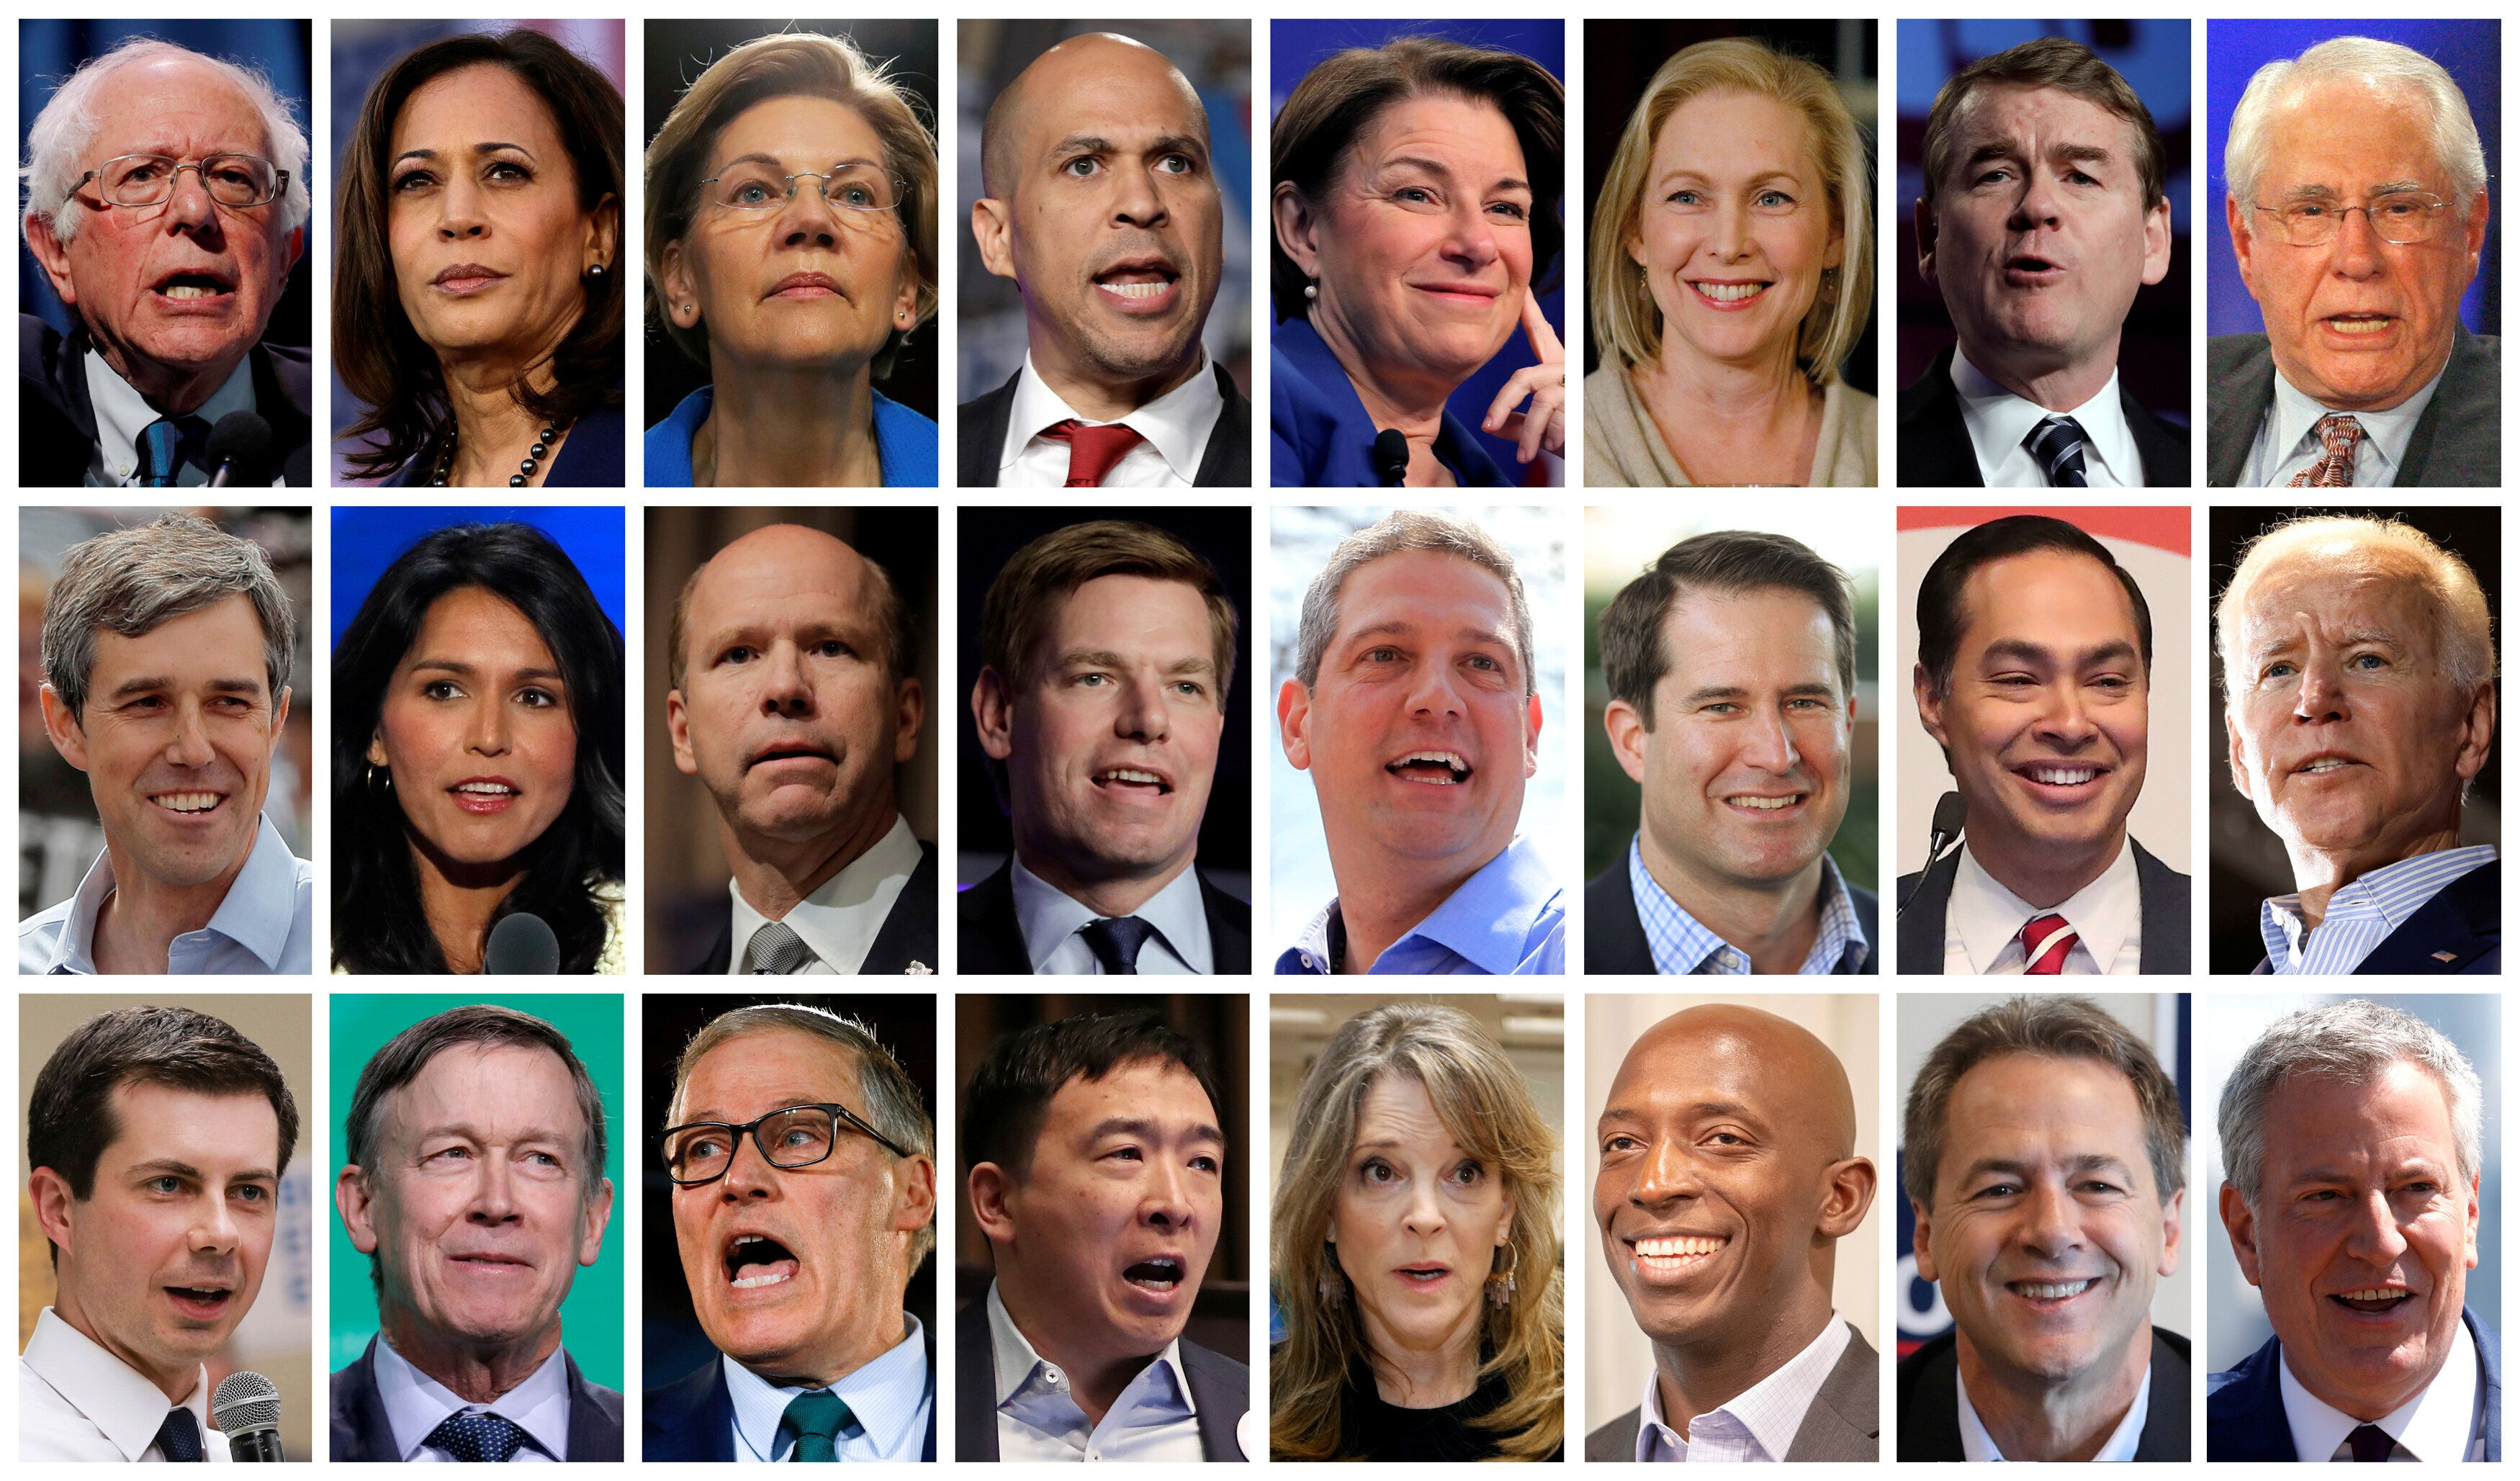 Twenty four 2020 Democratic presidential candidates are seen in a combination from file photos (L-R top row): U.S. Senators Bernie Sanders, Kamala Harris, Elizabeth Warren, Cory Booker, Amy Klobuchar, Kirsten Gillibrand, Michael Bennet and former U.S. Senator Mike Gravel. (L-R middle row): Former Texas congressman Beto O'Rourke, U.S. Representatives Tulsi Gabbard, John Delaney, Eric Swalwell, Tim Ryan, Seth Moulton, former HUD Secretary Julian Castro and former U.S. Vice President Joe Biden. (L-R bottom row): Mayor Pete Buttigieg, Former Gov. John Hickenlooper, Gov. Jay Inslee, Andrew Yang, Marianne Williamson, Mayor Wayne Messam, Montana Gov. Steve Bullock and New York City Mayor Bill de Blasio.   REUTERS/Files